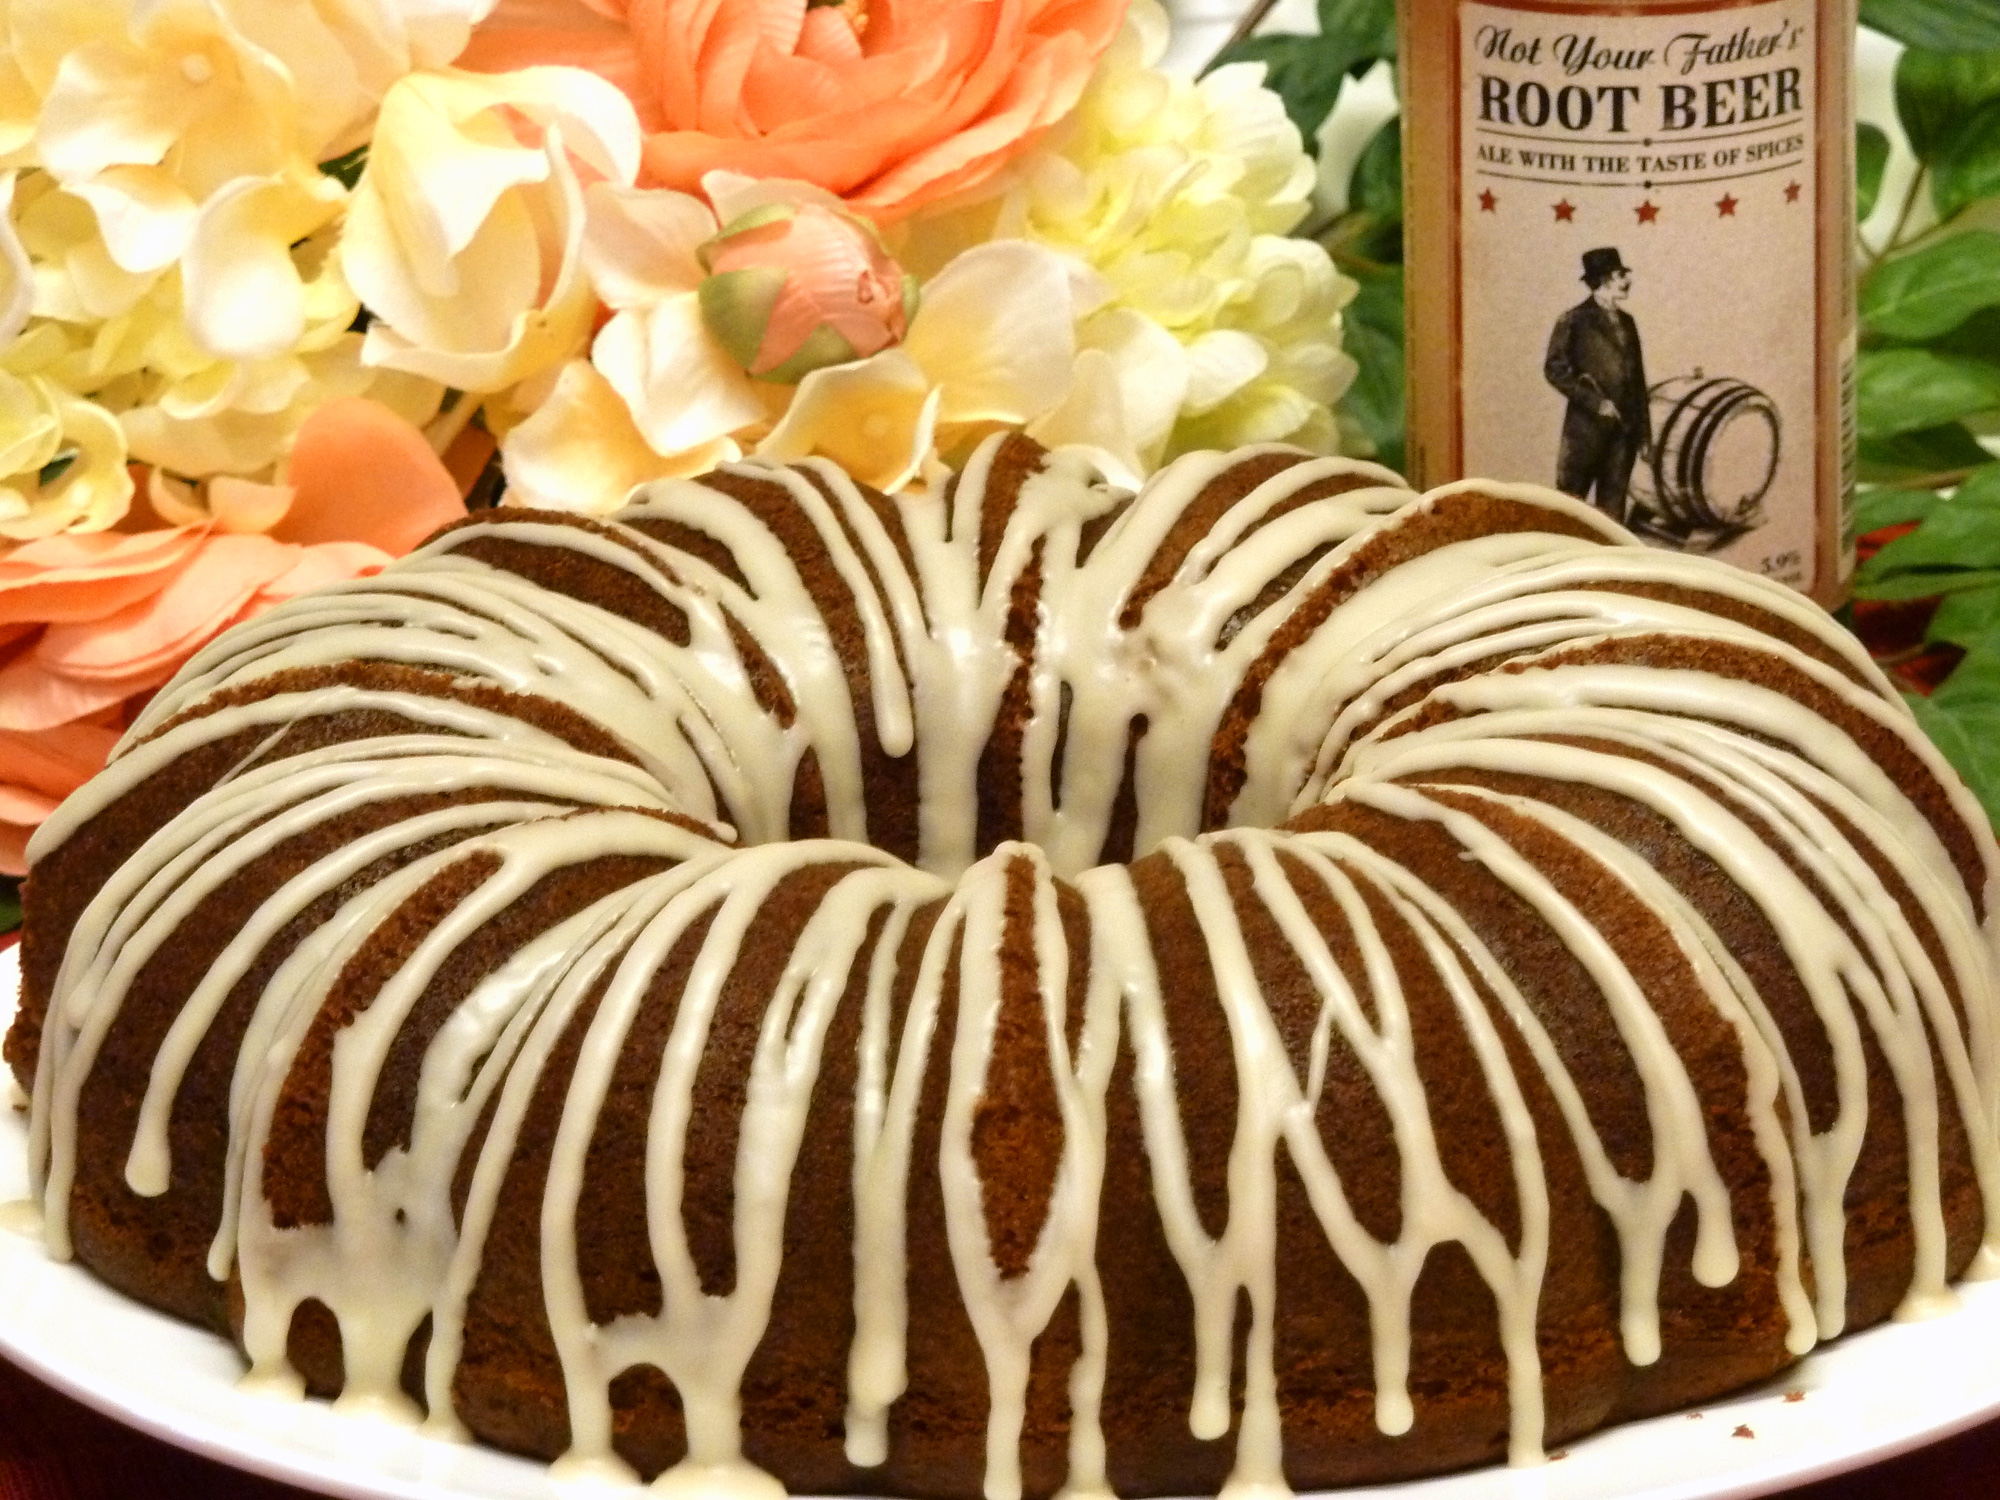 Root beer cake has a delicious eye-appealing glaze.